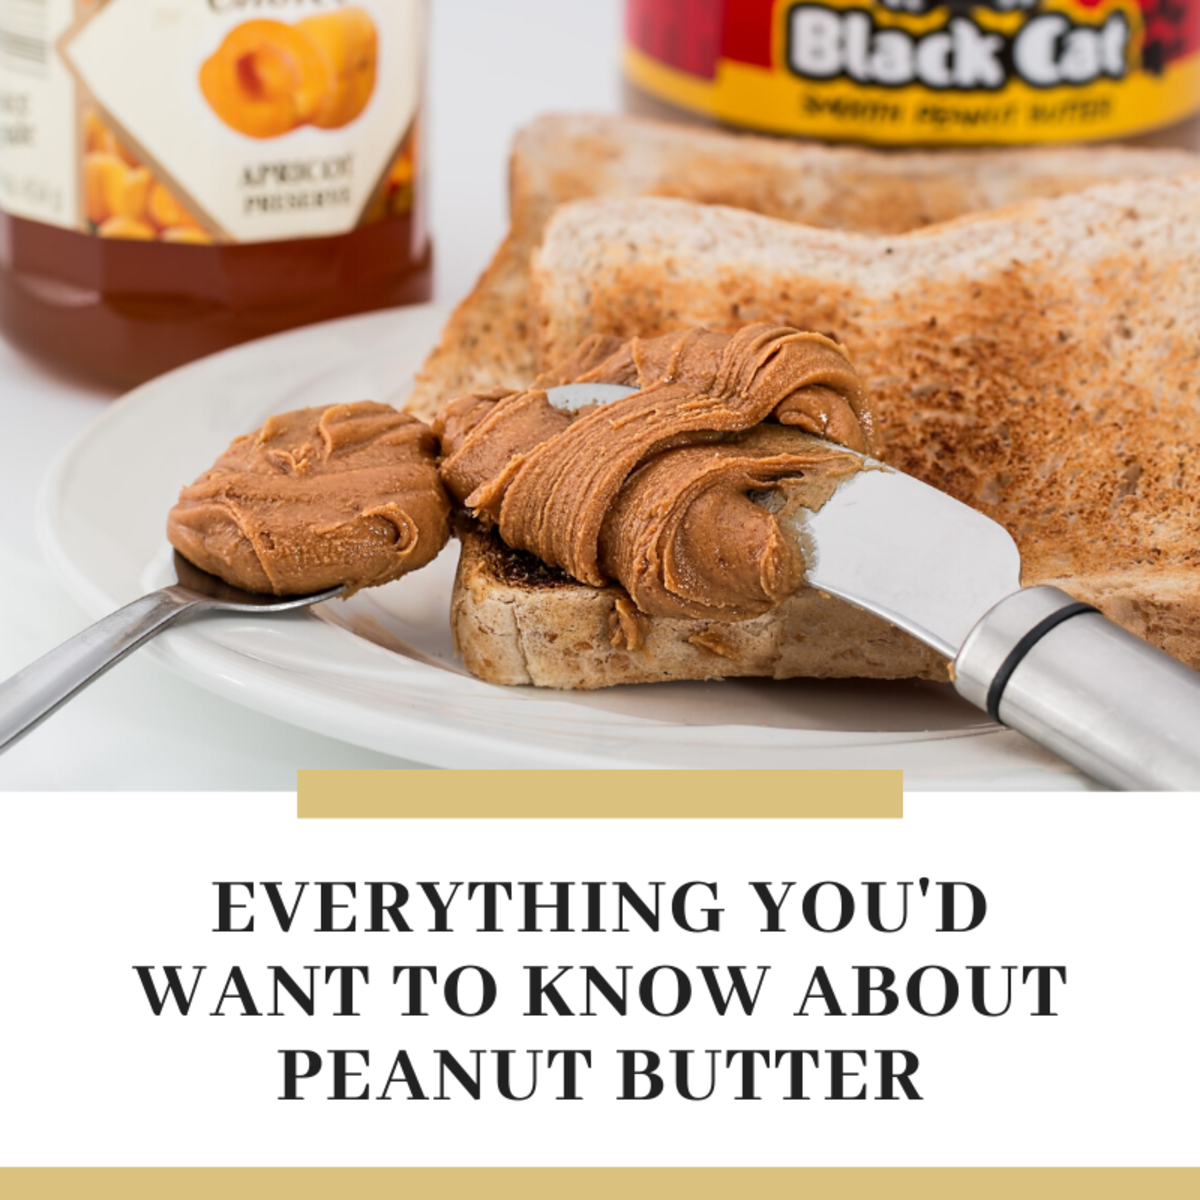 Exploring Peanut Butter: Tales, Trivia, and Tasty Recipes